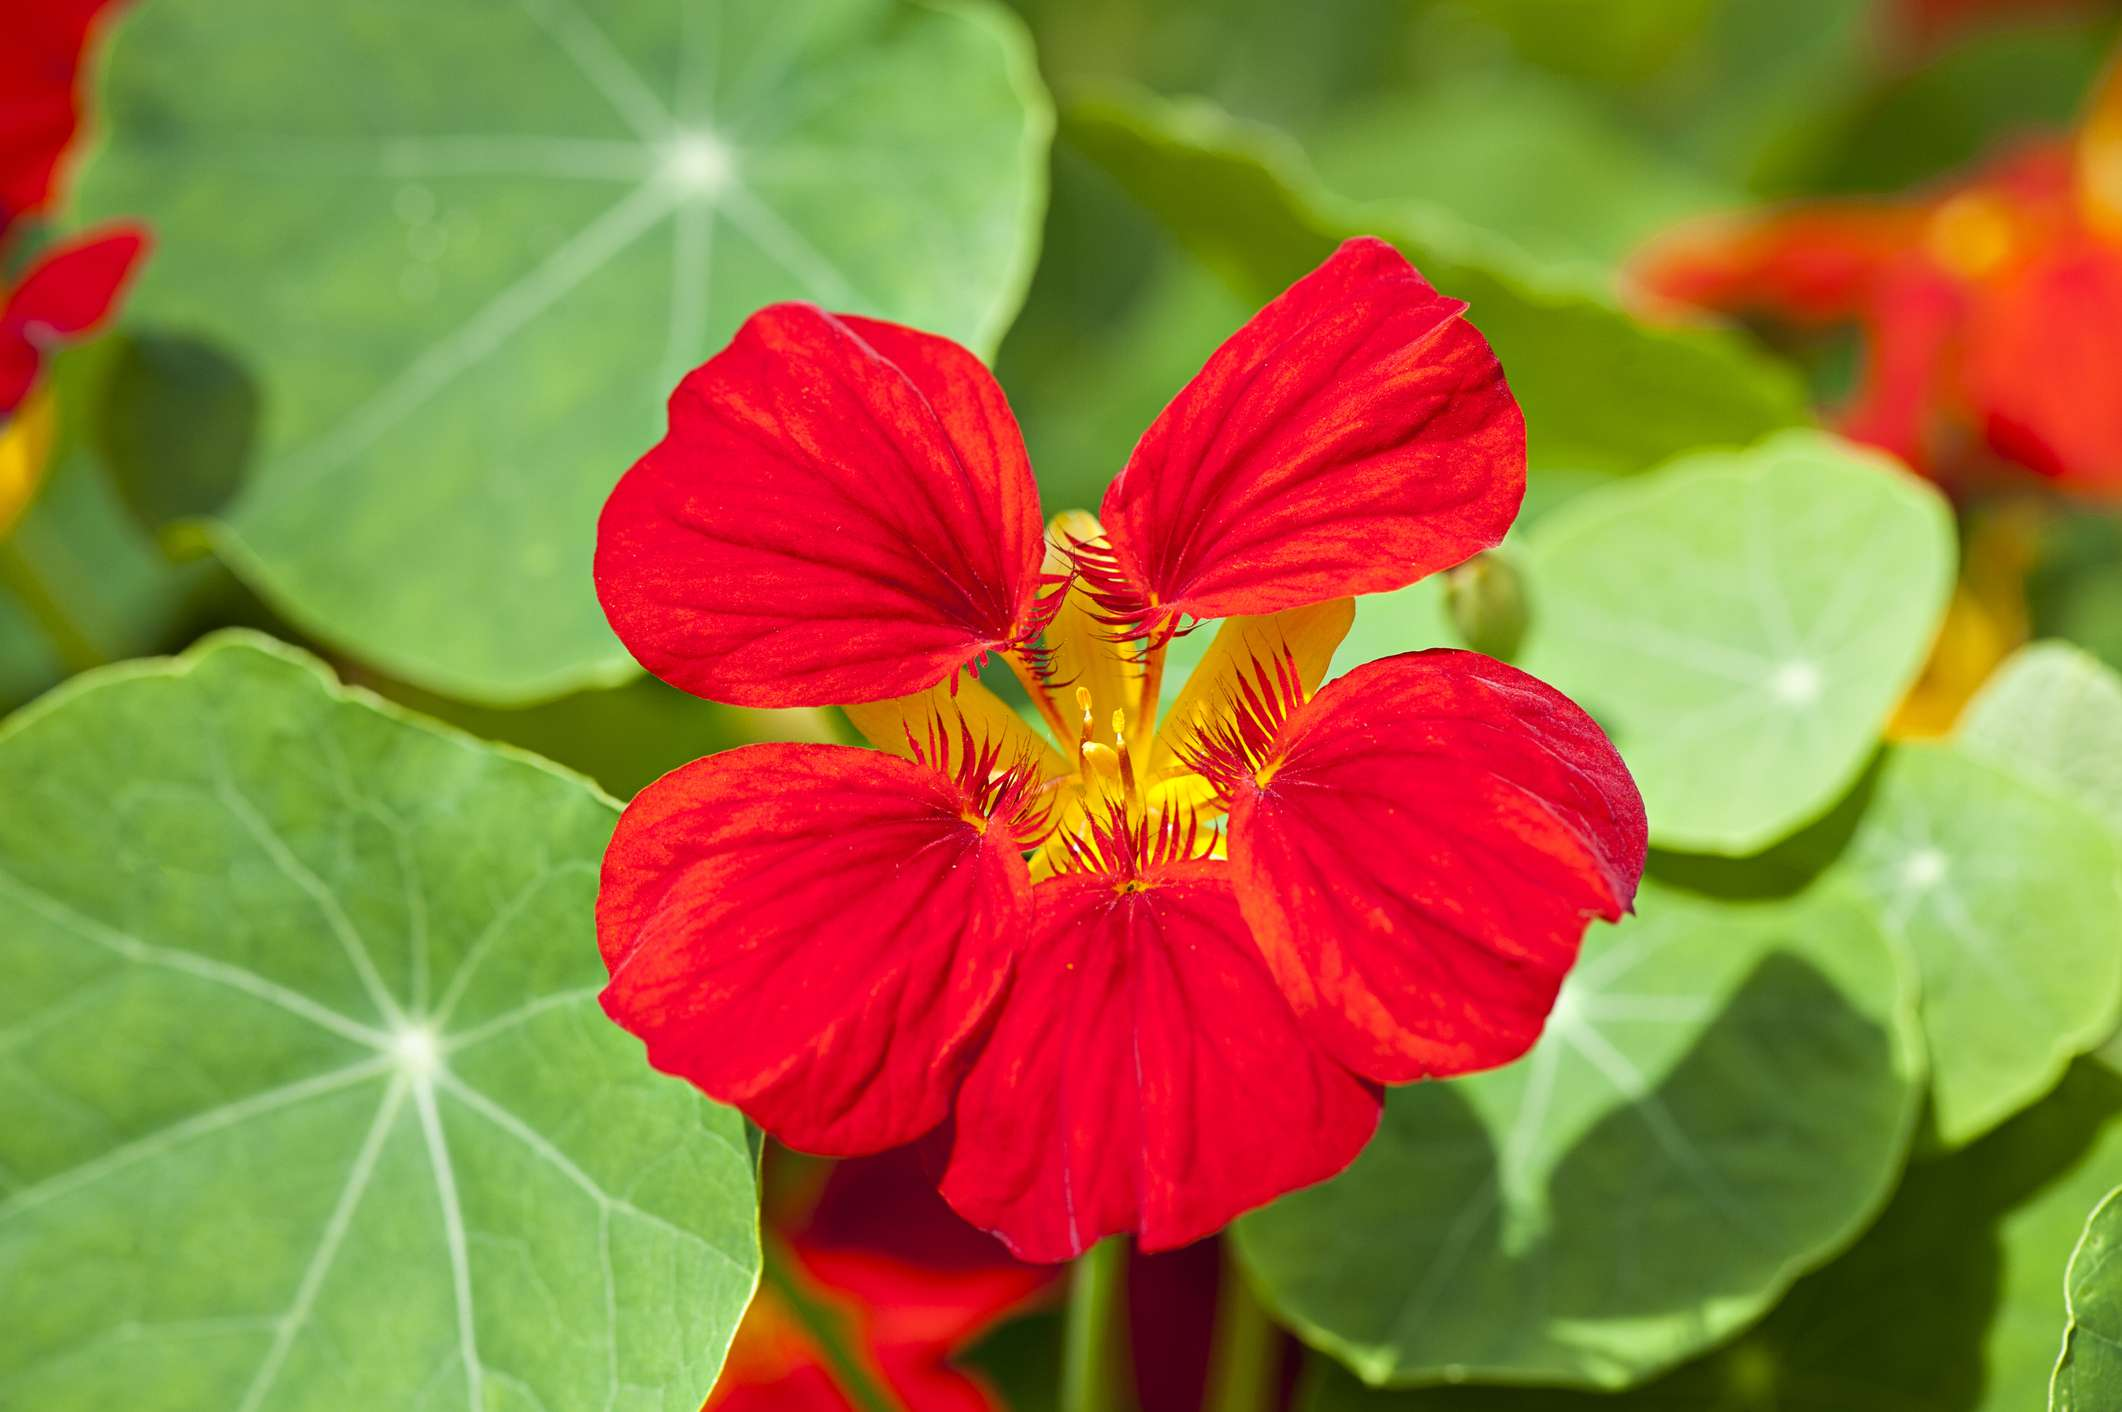 Single red nasturtium surrounded by its signature round leaves